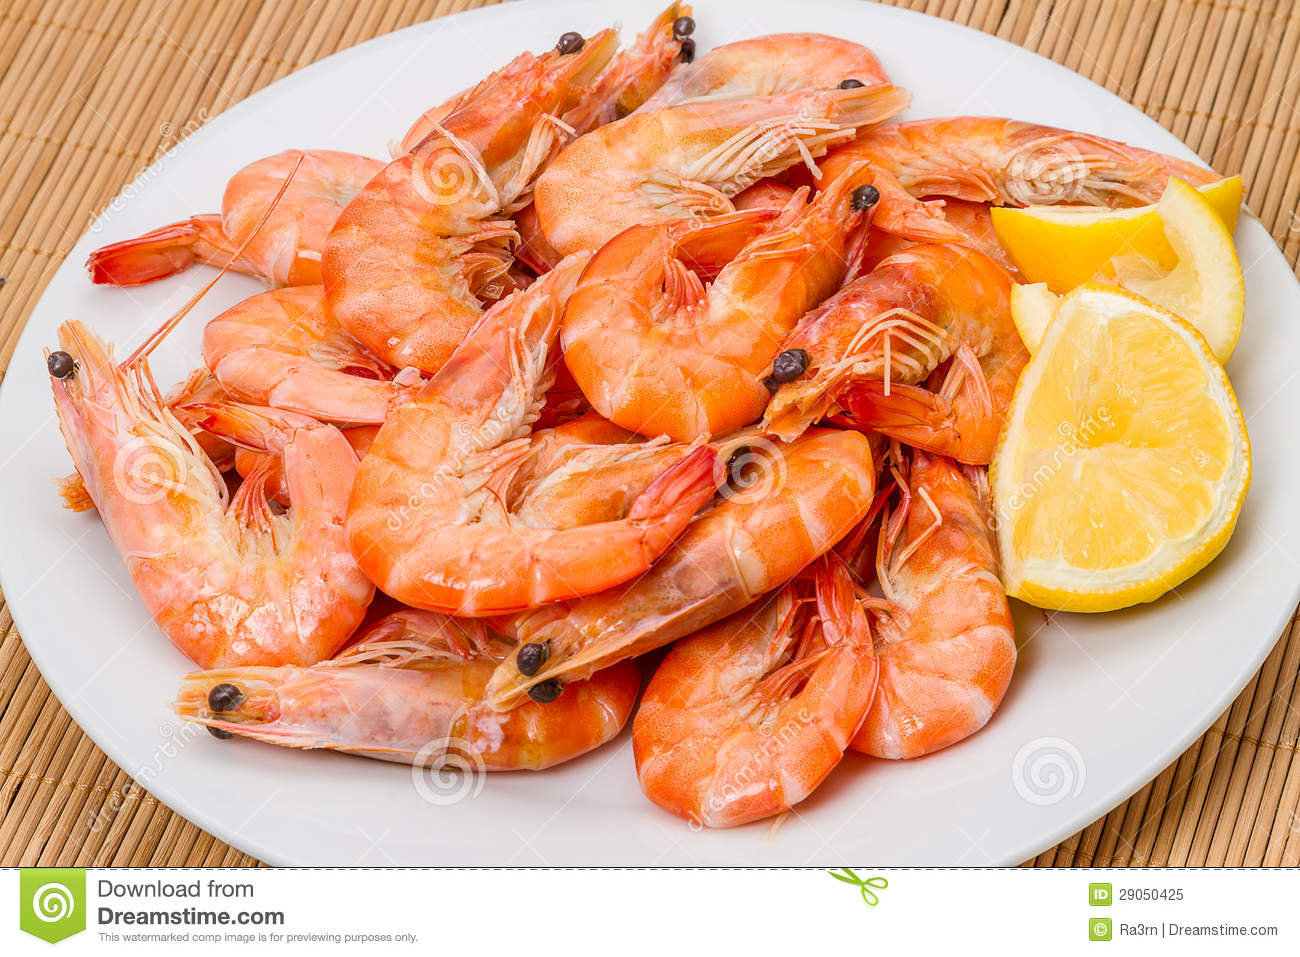 how to eat cooked shrimp